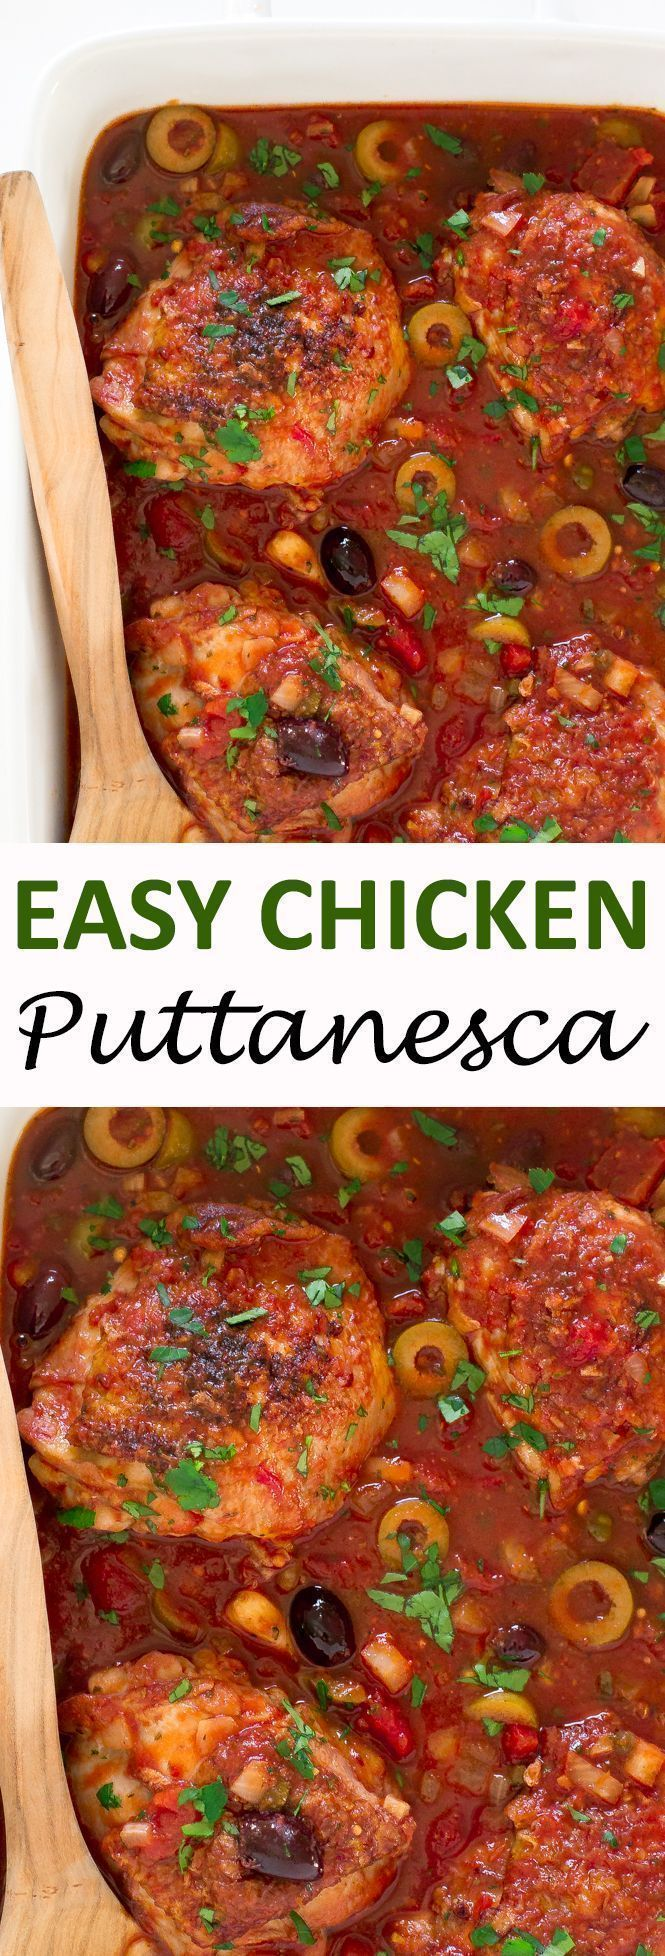 30 Minute Chicken Puttanesca. Juicy chicken thighs simmered in a rich tomato broth with olives and capers. | chefsavvy.com   Wine is only non-compliant ingredient...could be omitted. Whole family enjoyed.